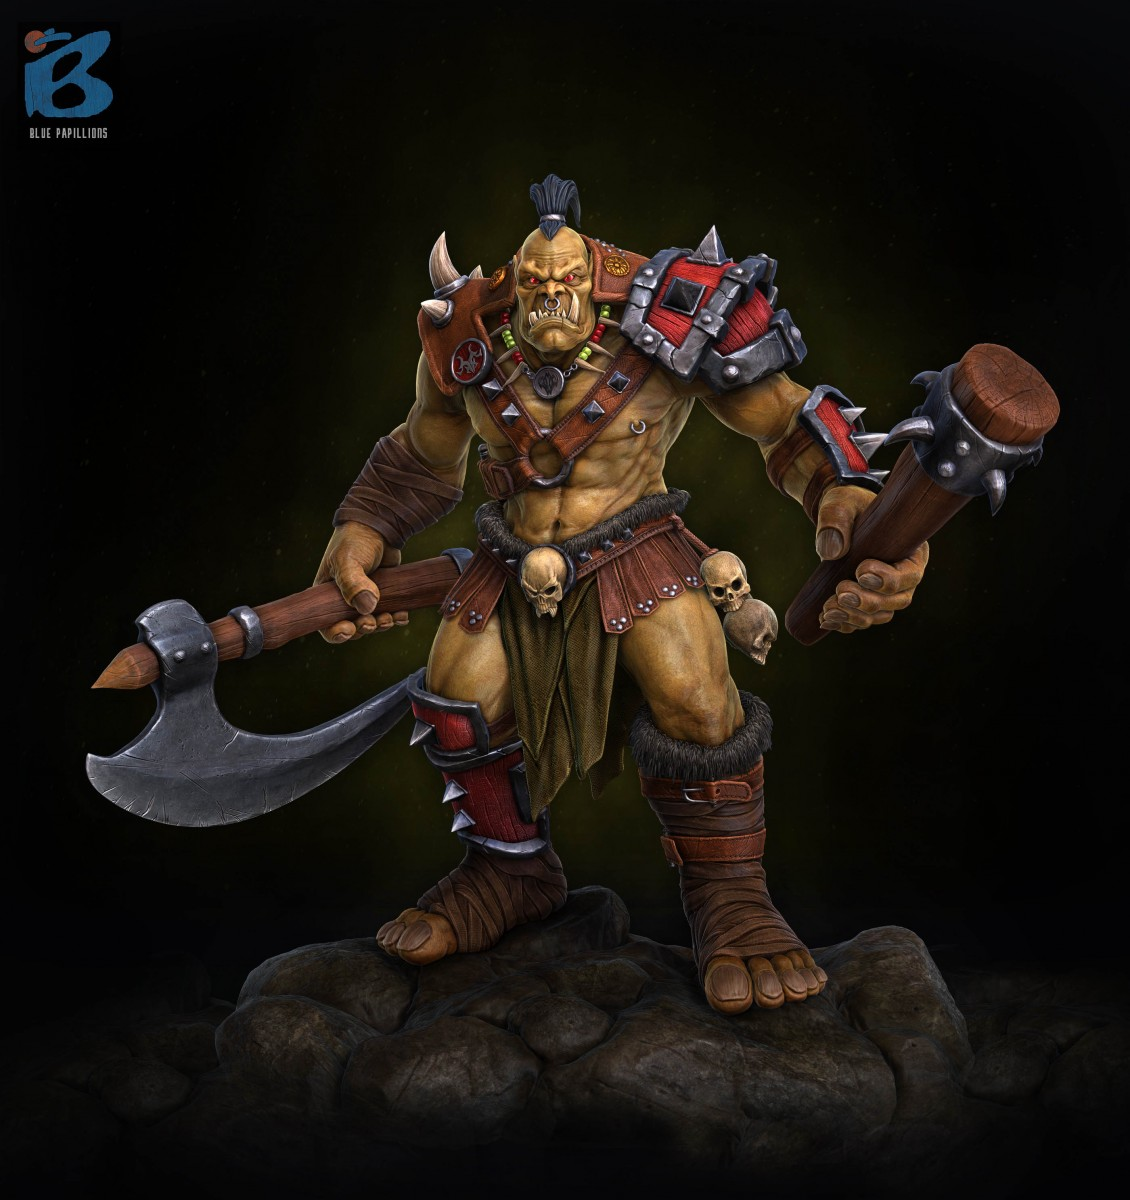 Orc 2 blog